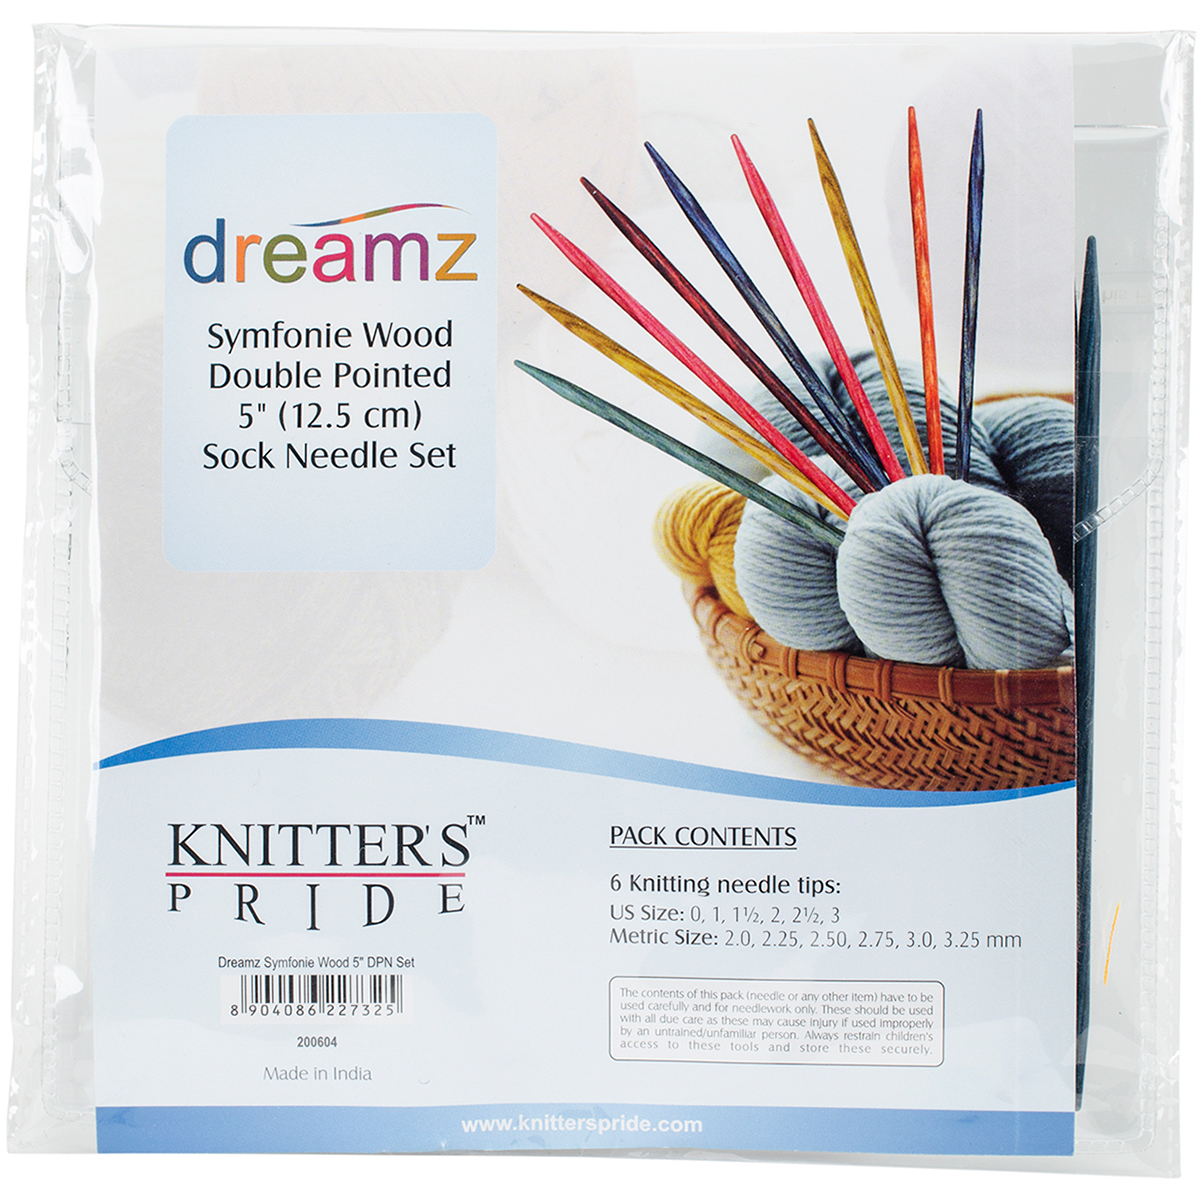 Knitter's Pride-Dreamz Double Pointed Needles Set 5-Socks Kit